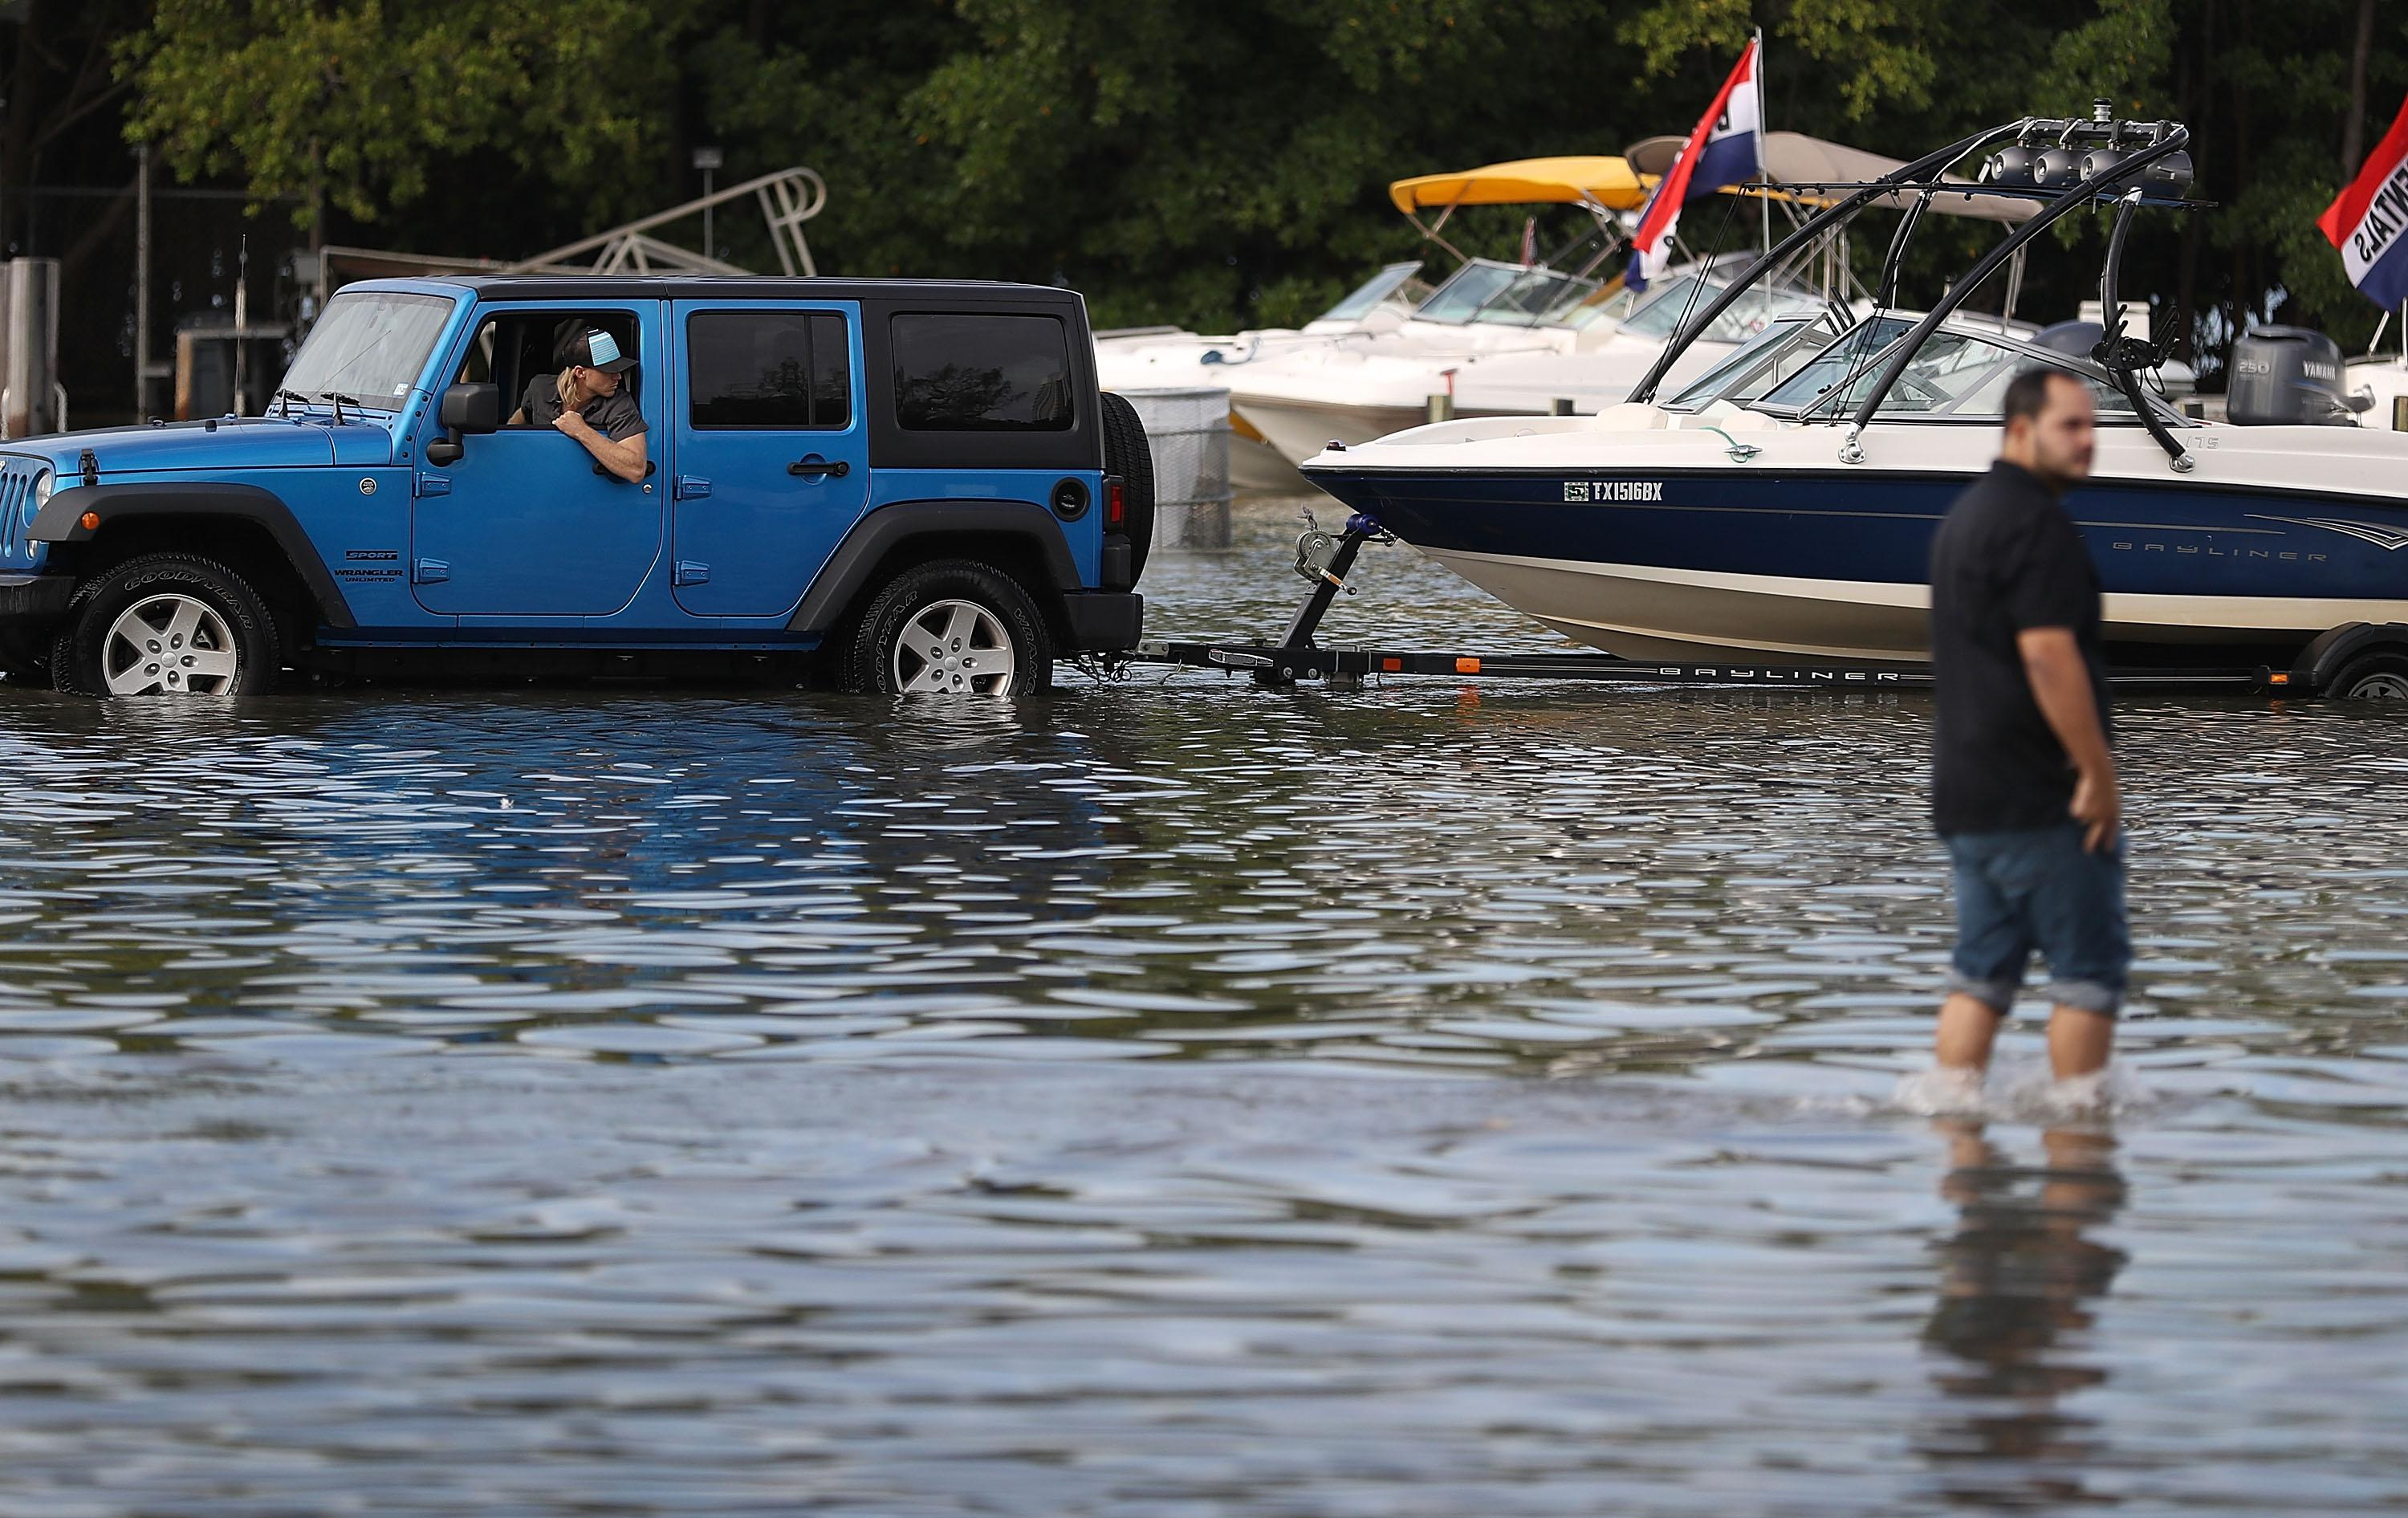 A man drives through a flooded parking lot to put his boat in at a ramp.